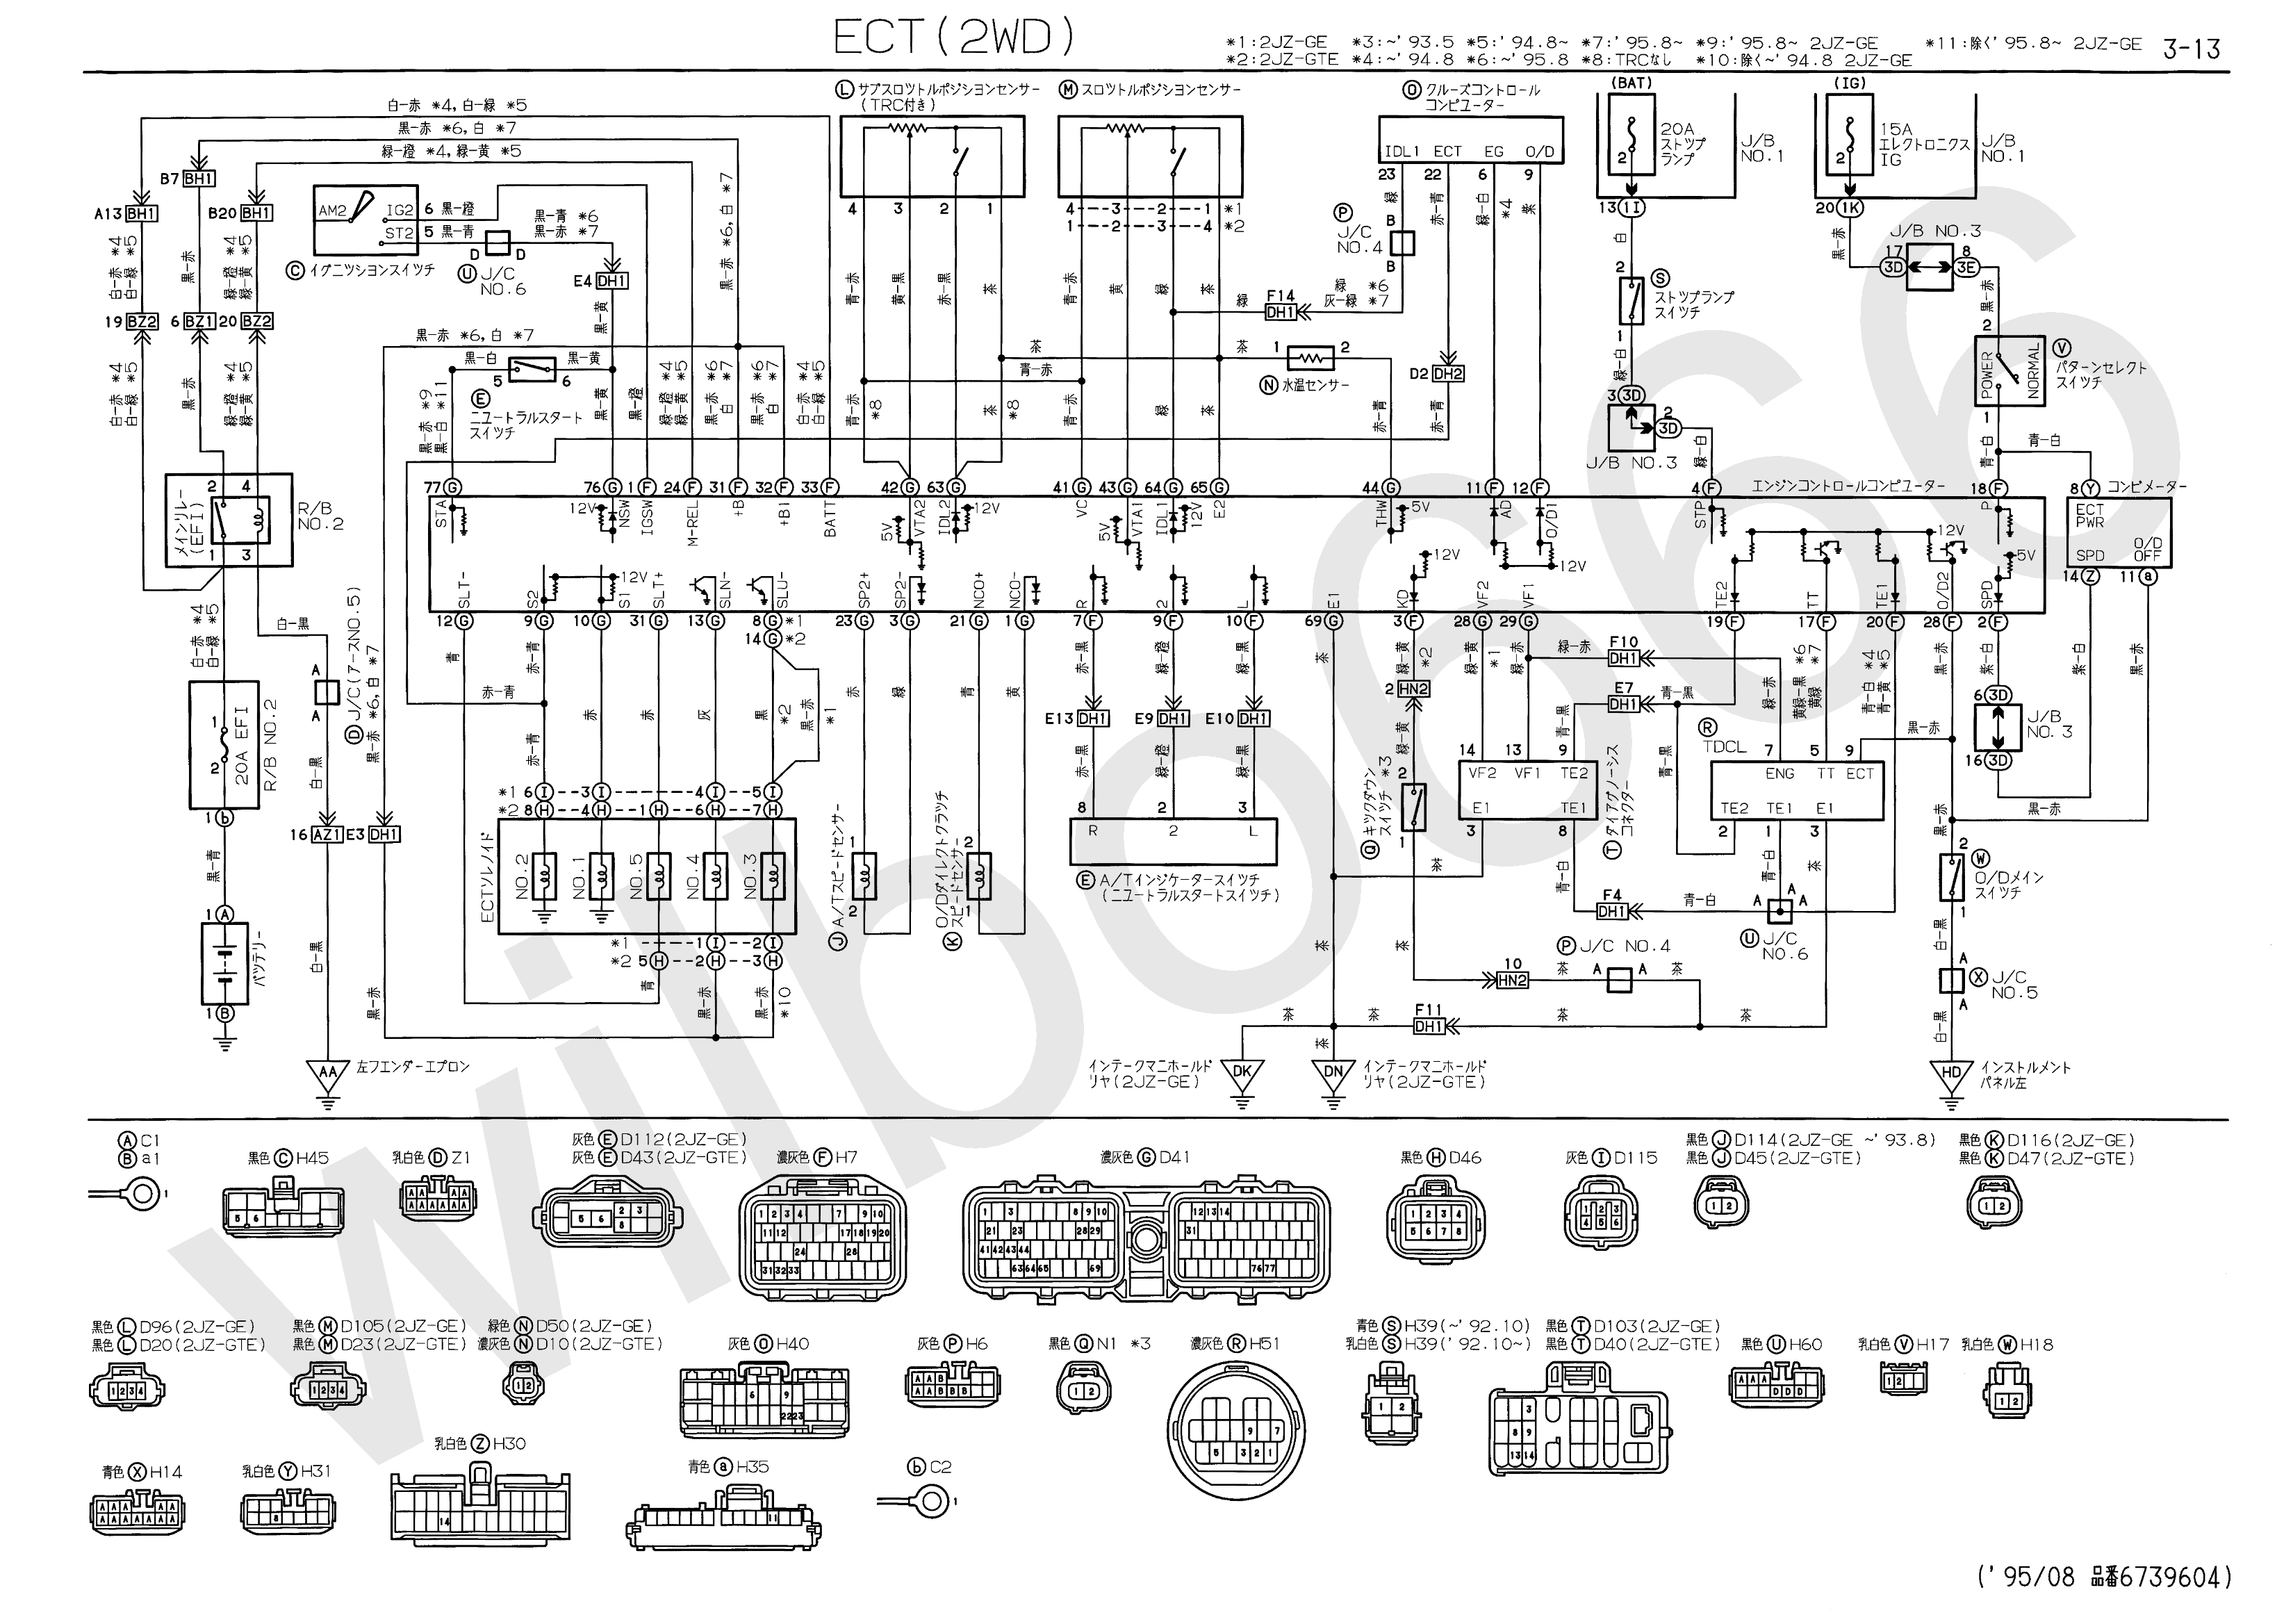 Toyota Electrical Wiring Diagrams Diagram Data 1998 Tacoma Schema 2002